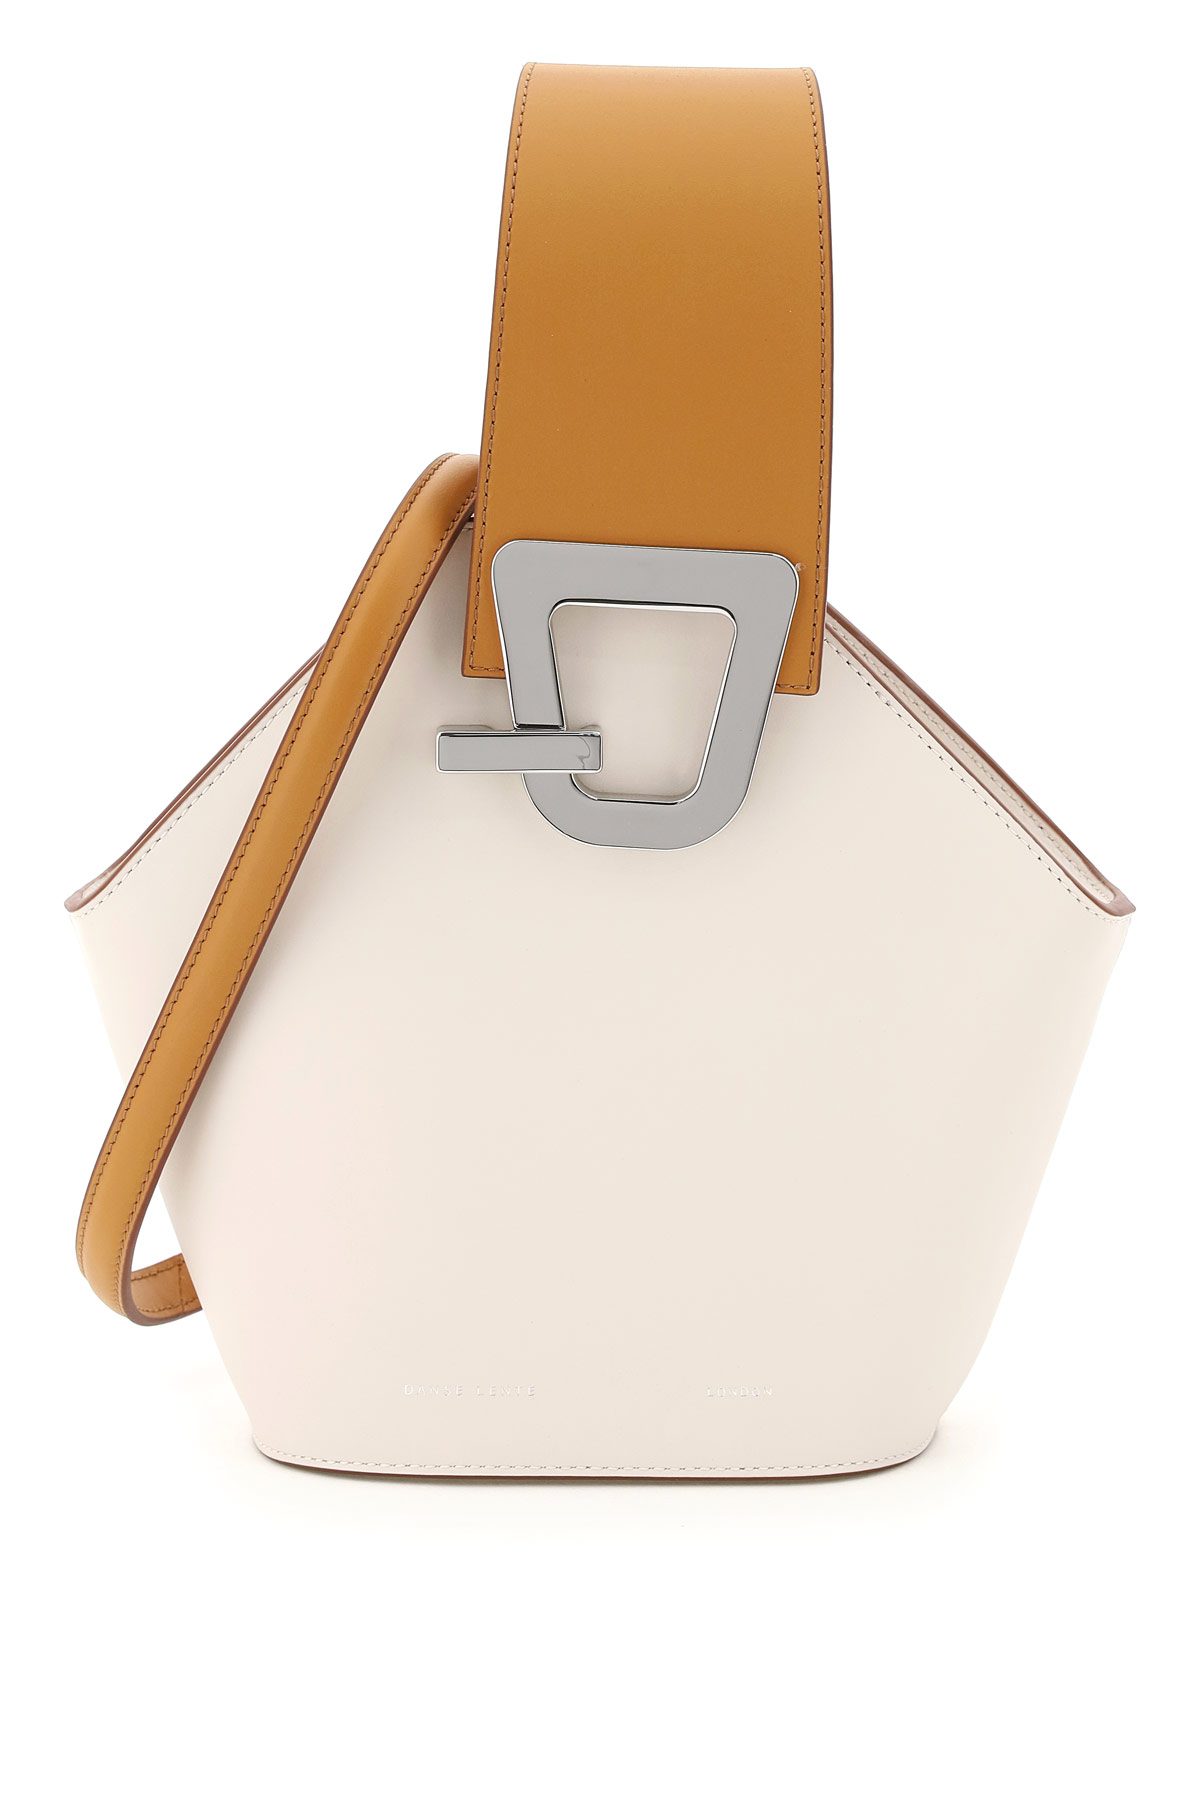 Danse Lente MINI JOHNNY LEATHER BAG